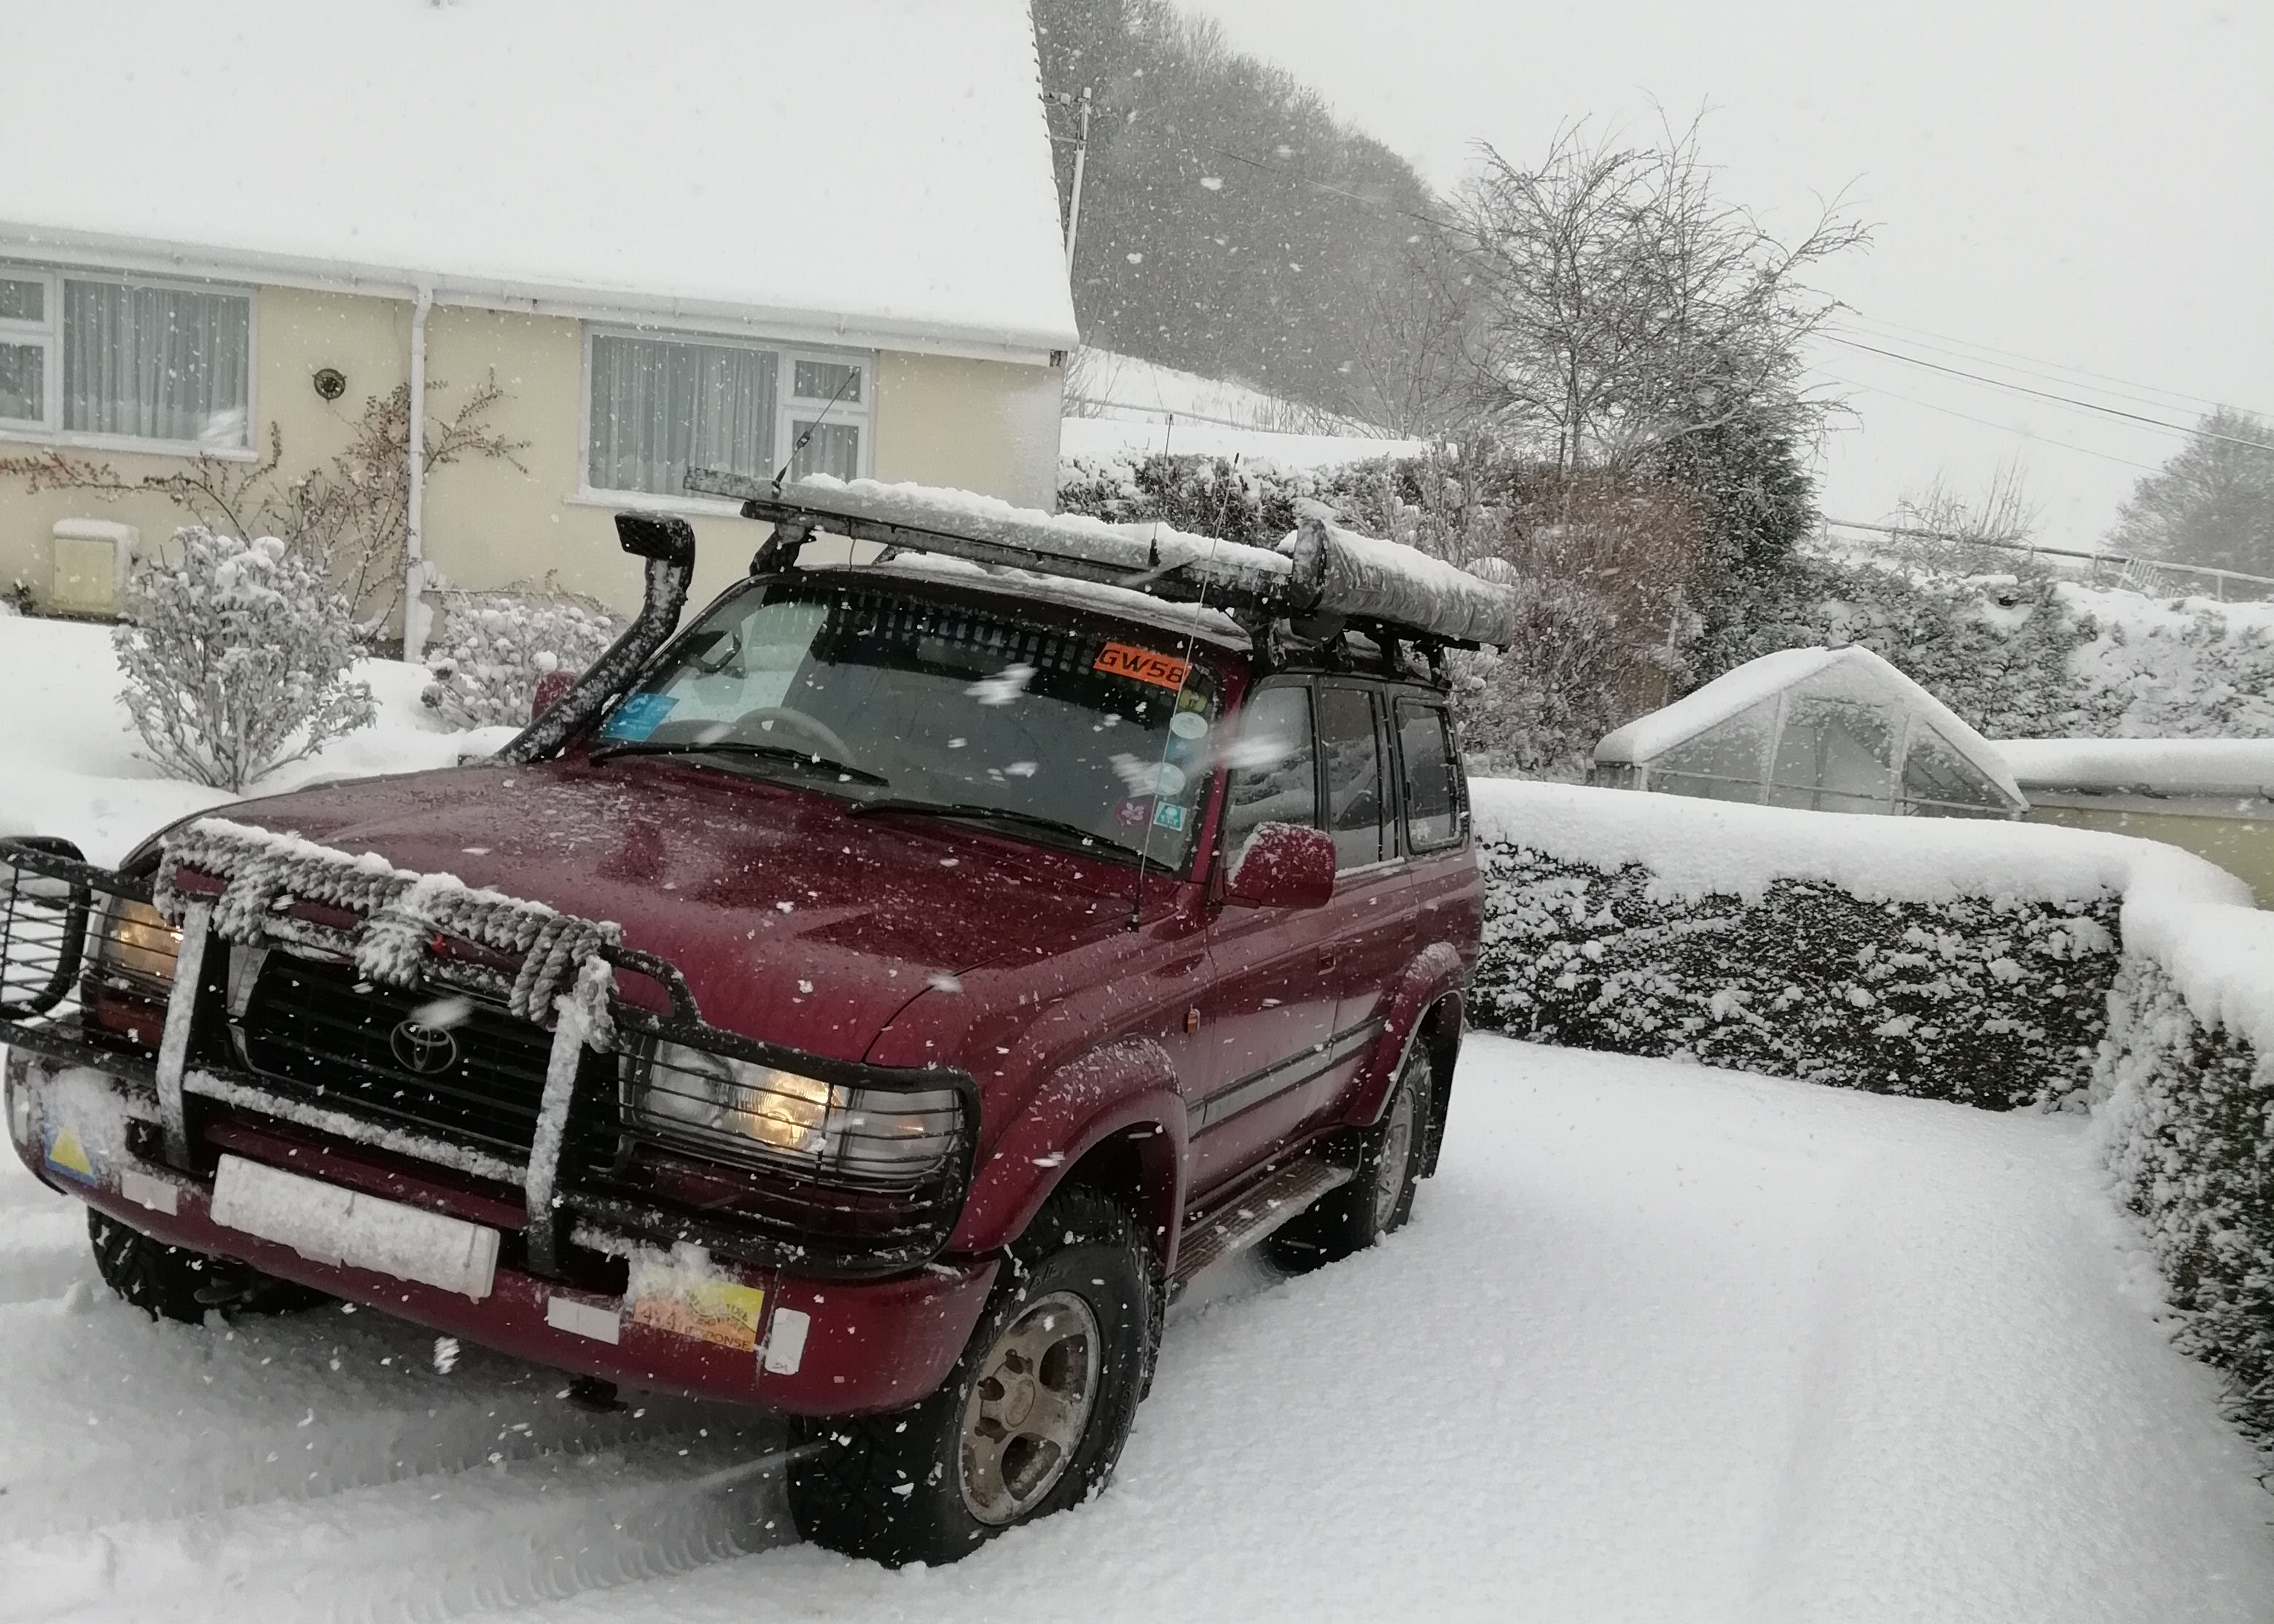 Volunteer 4x4 crew relies on Teamup to schedule responders